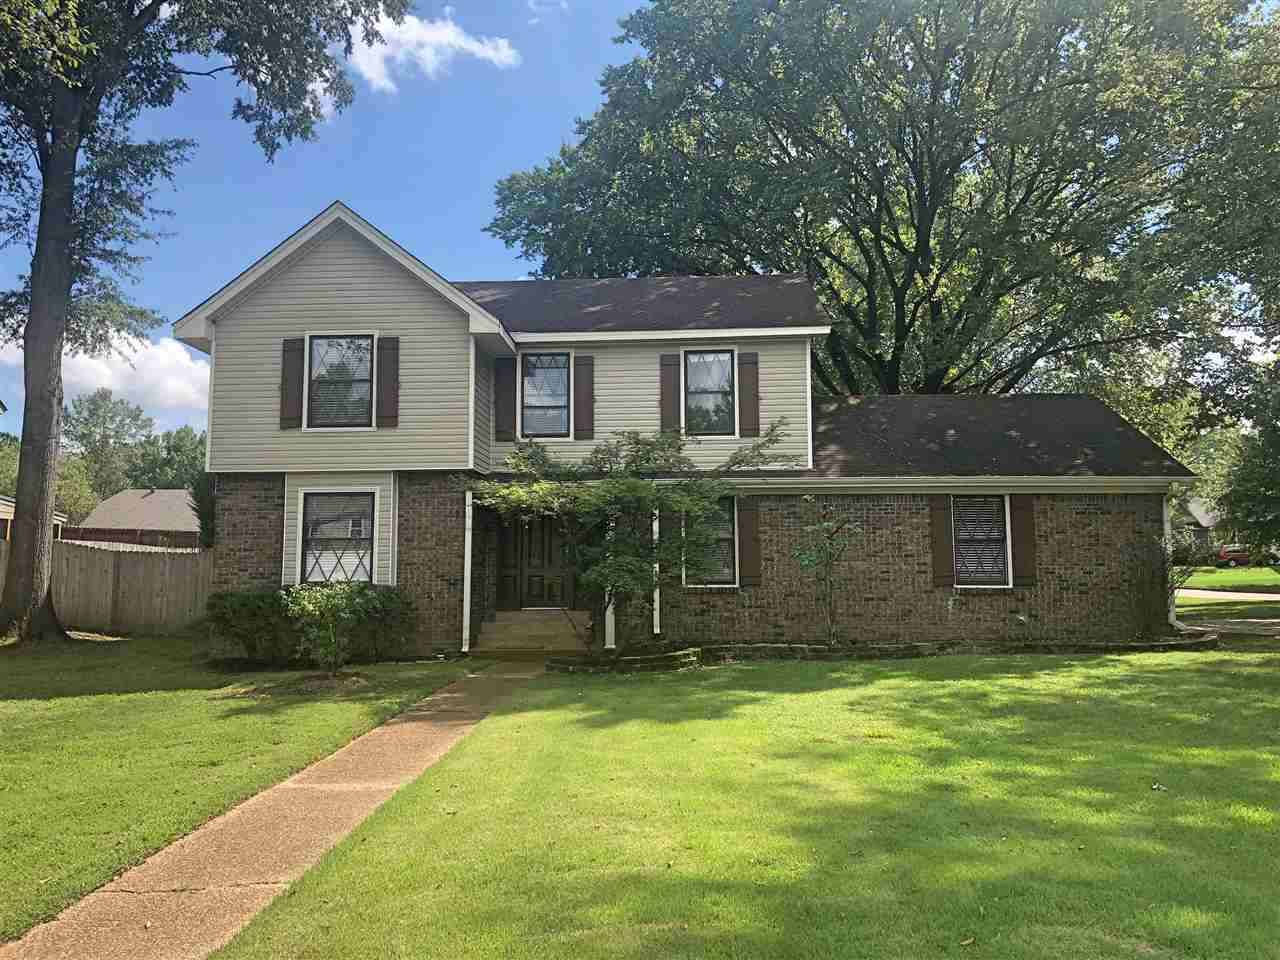 145 E Lawnwood Collierville, TN 38017 - MLS #: 10032902